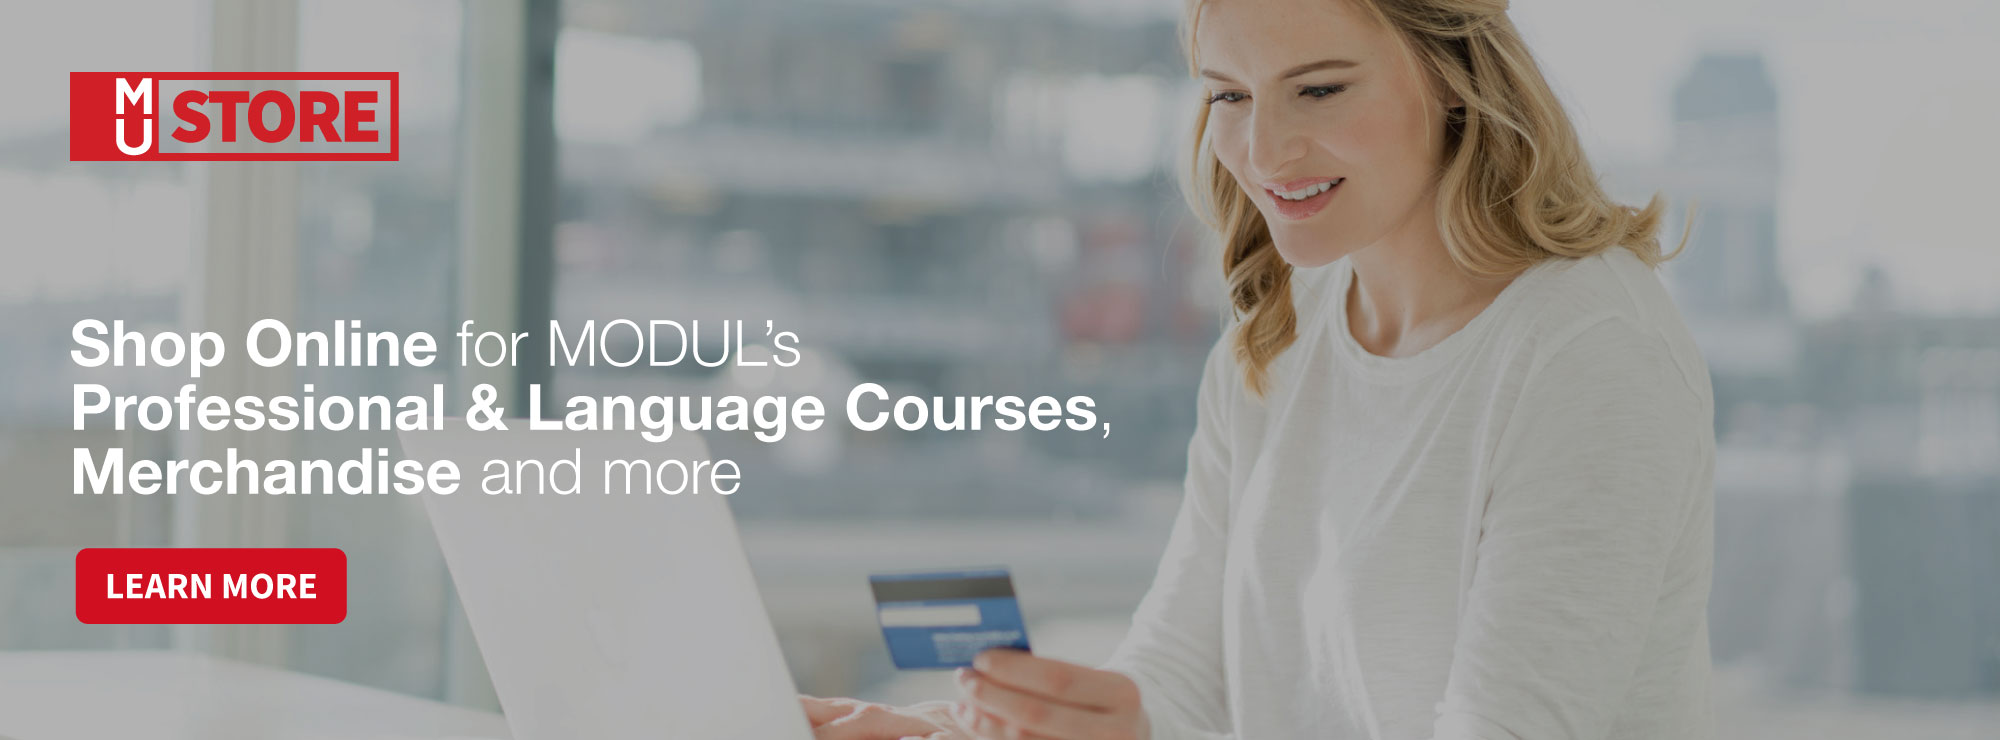 Shop Online for MODUL's Professional & Language Courses, Merchandise and more